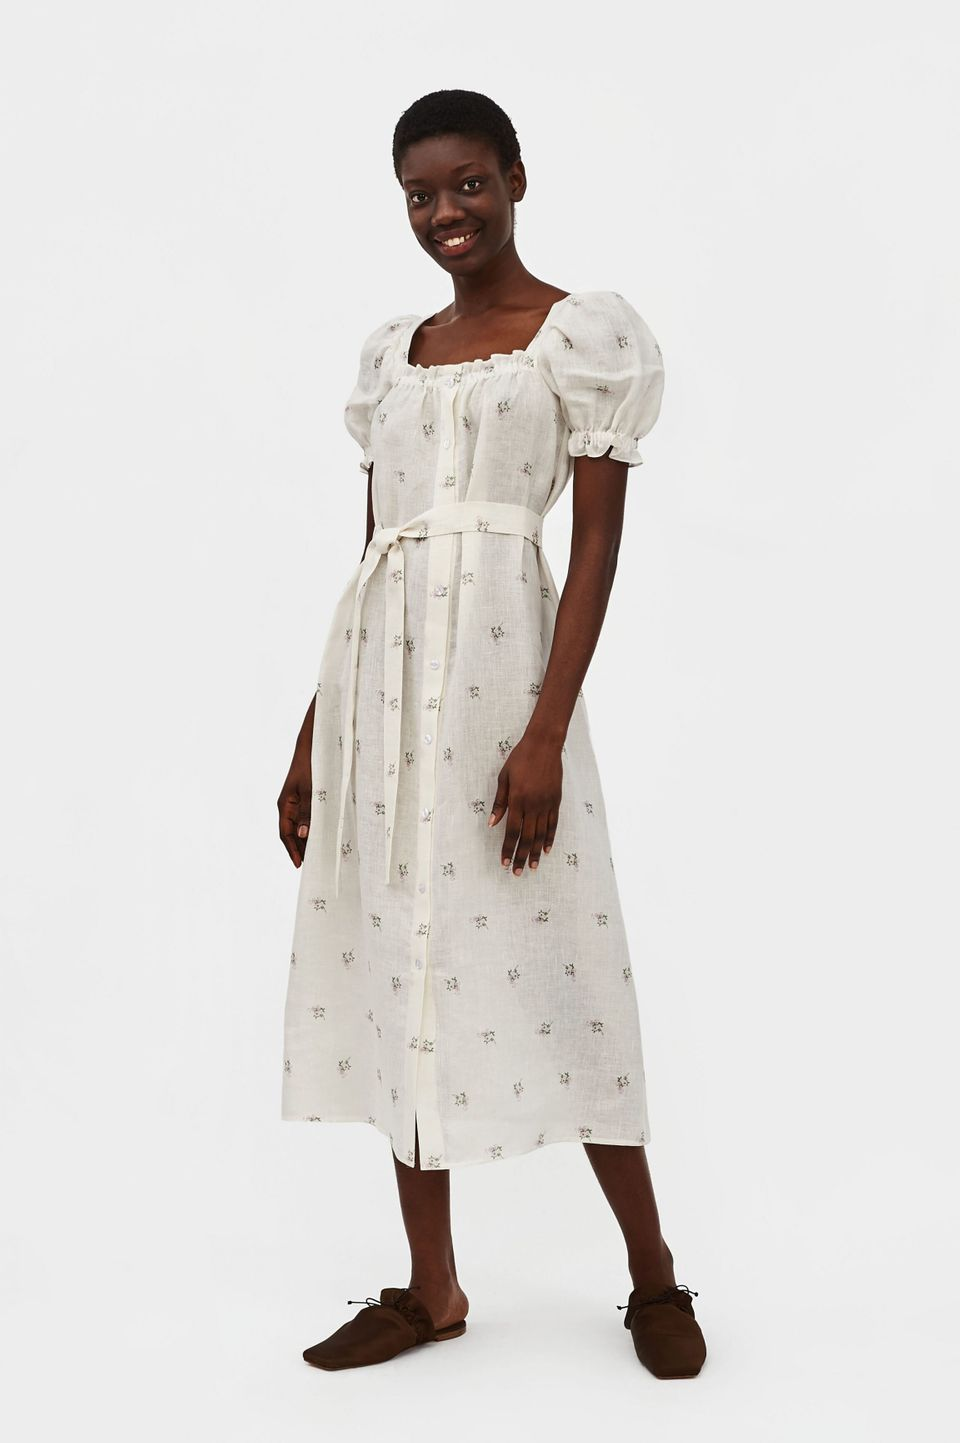 Meet The 'Nap Dress,' The Latest Pandemic Clothing Trend 4